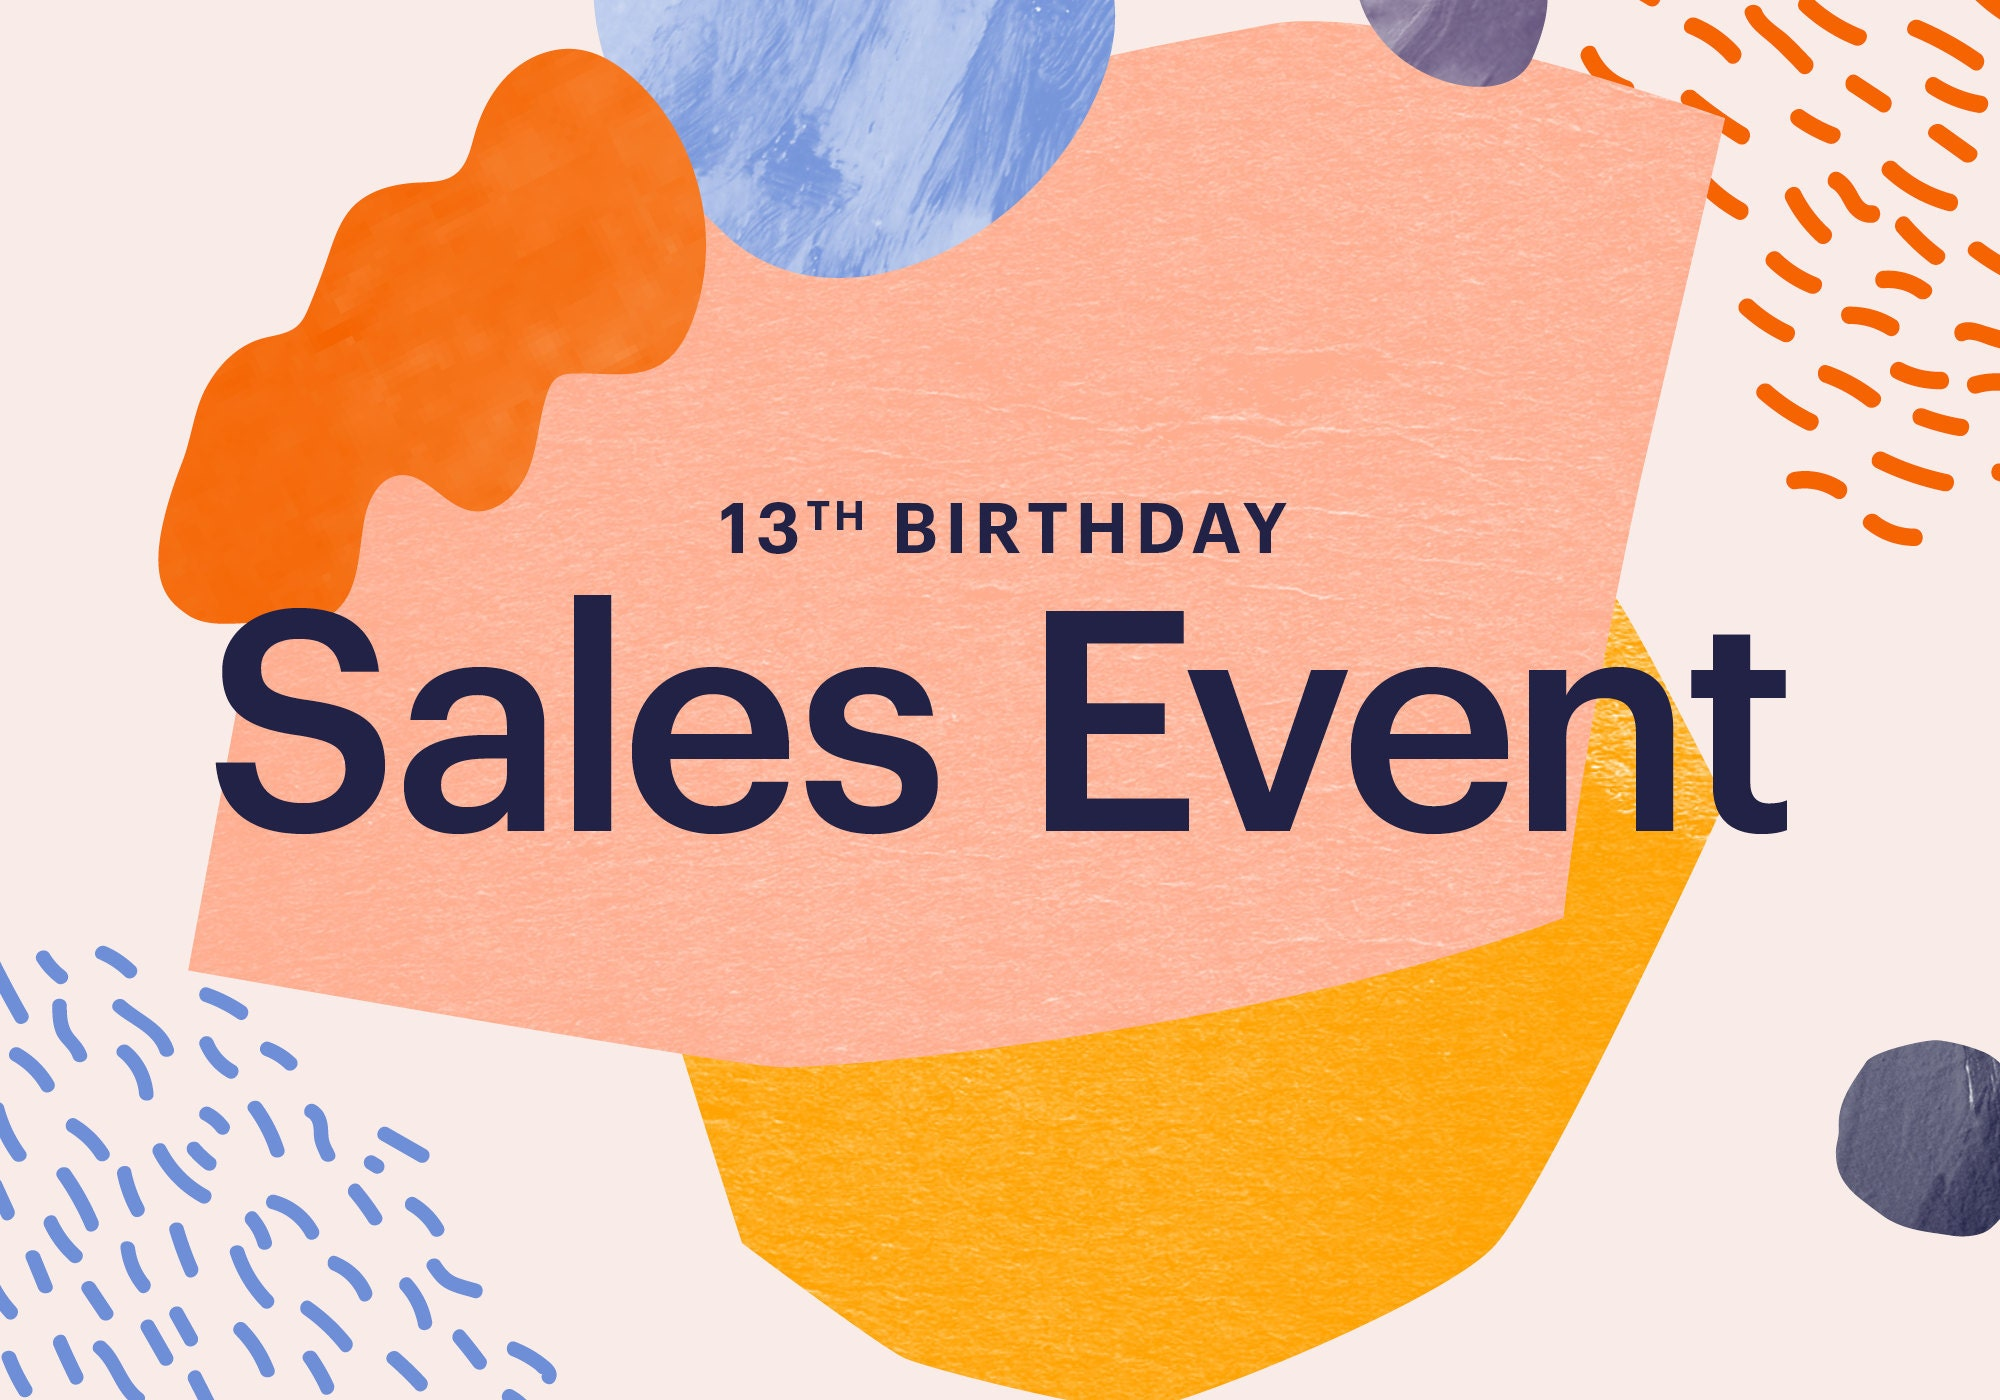 etsy s 13th birthday sales event